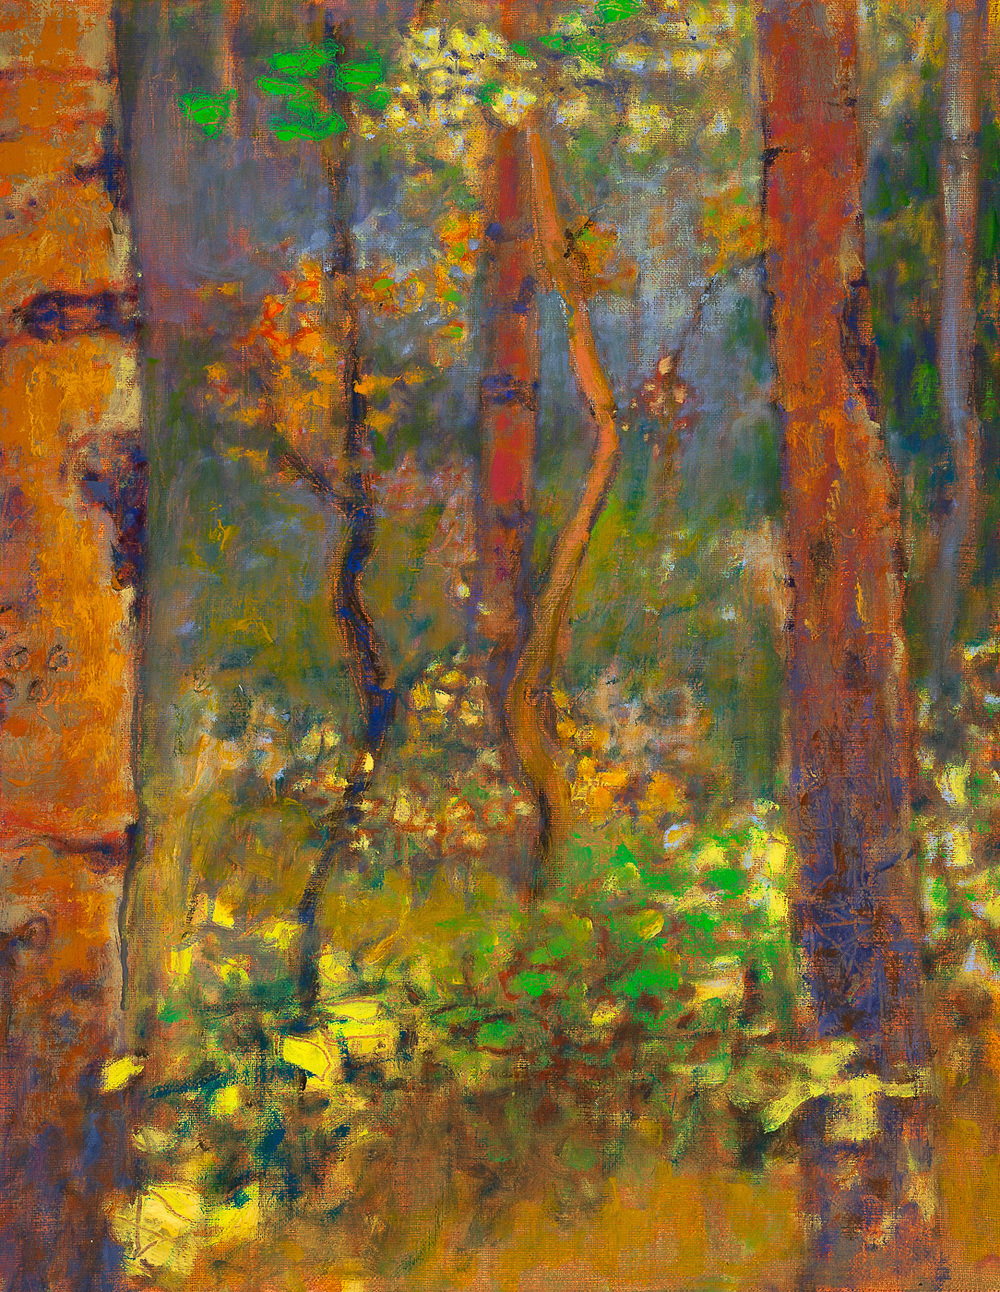 A Moment of Wonder   | oil on linen | 18 x 14"